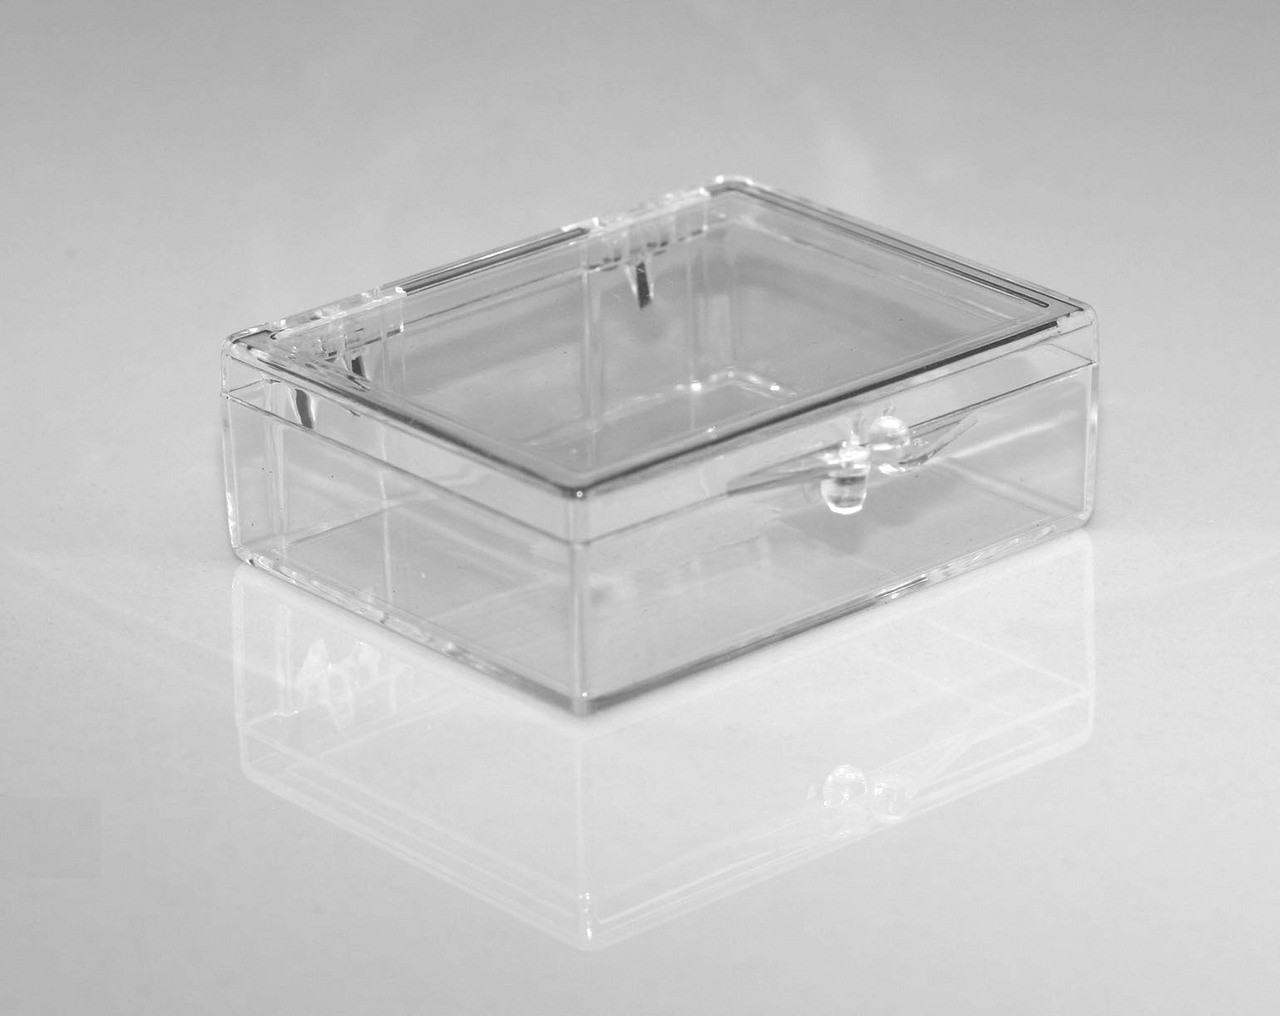 2 18 X 1 58 X 58 Small Plastic Box With Hinged Lid 210